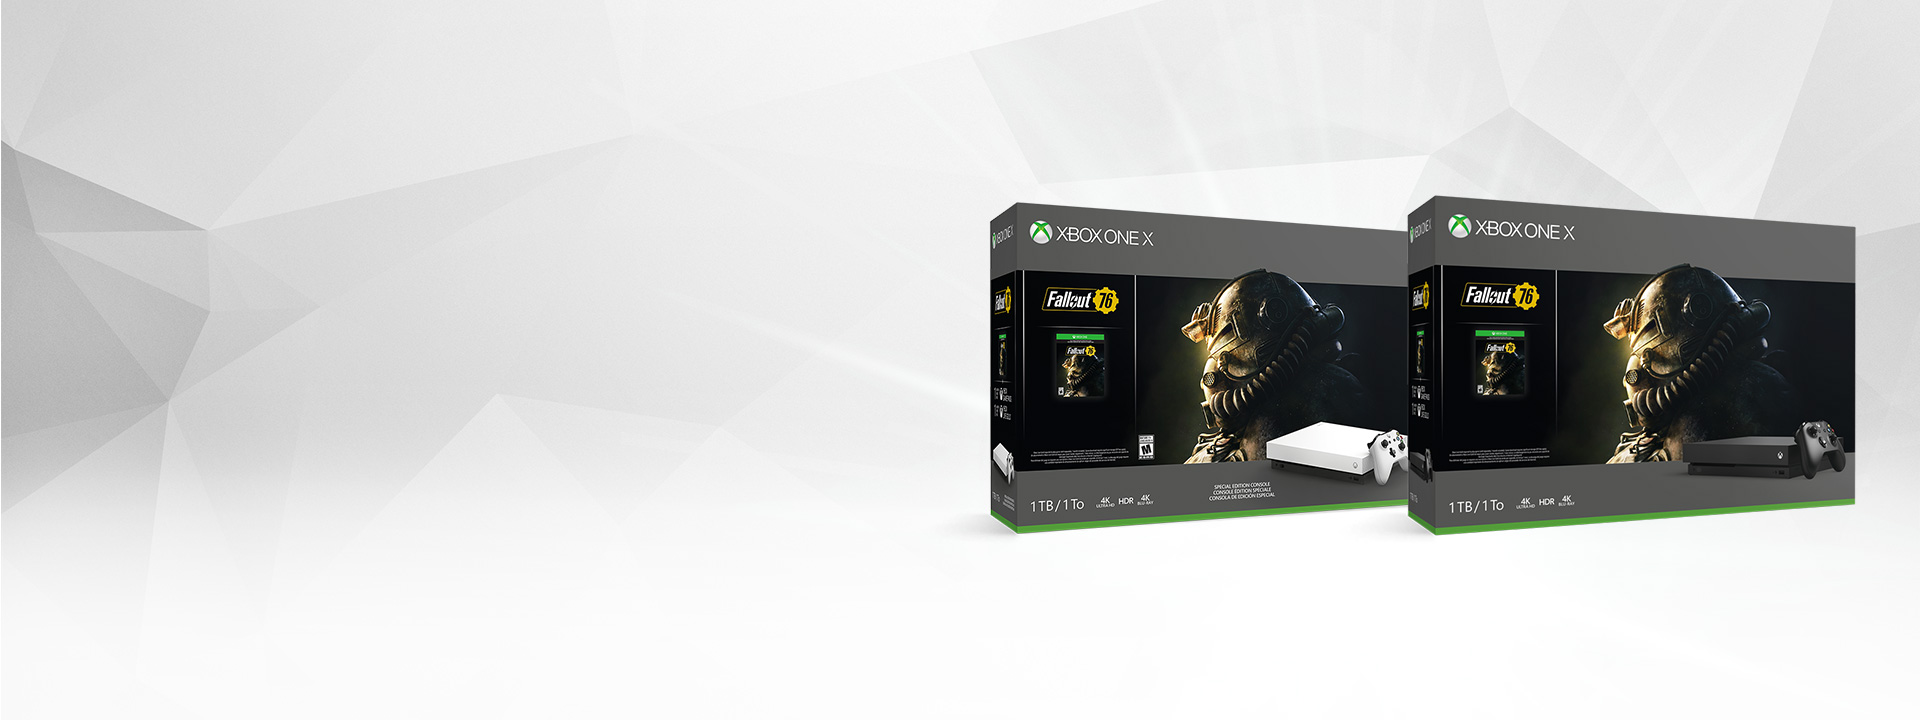 Save $130 on Xbox One X​